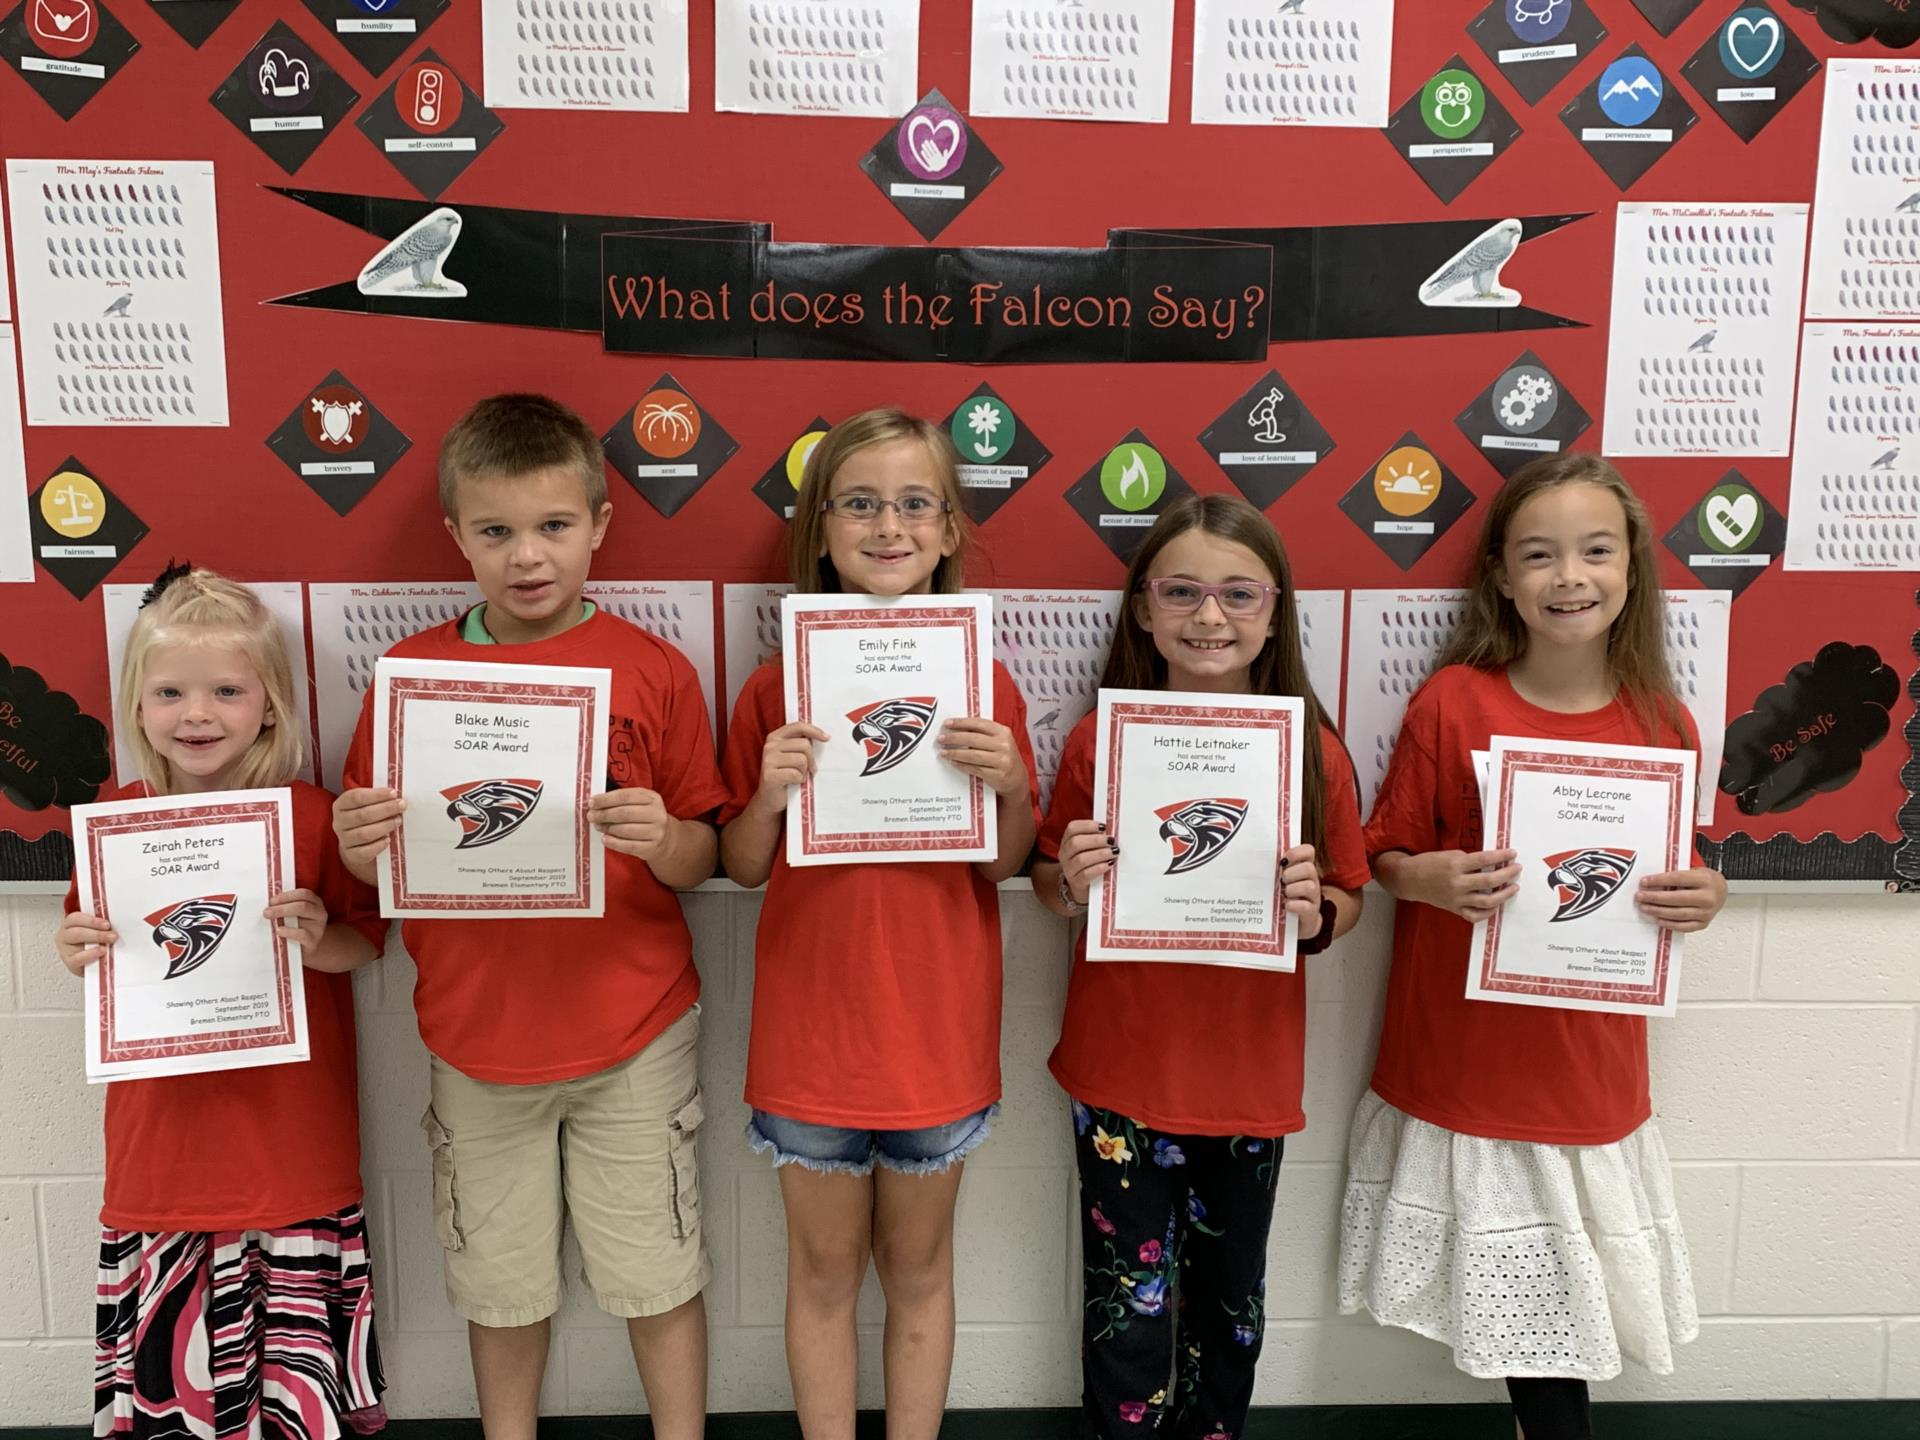 One student from each grade received the September SOAR award